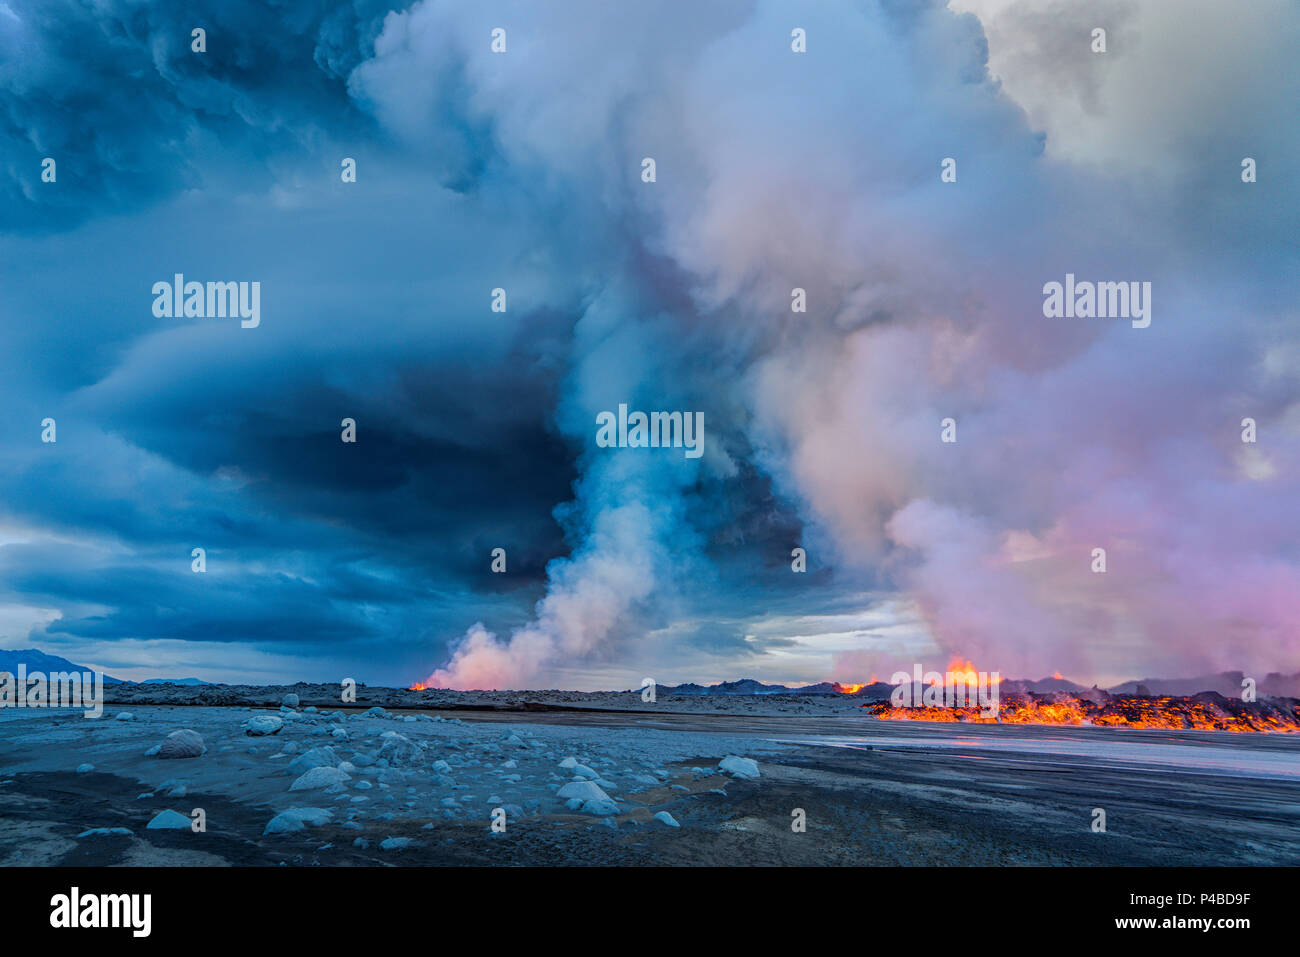 Volcano Eruption at the Holuhraun Fissure near Bardarbunga Volcano, Iceland. A late afternoon view of part of the Holuhraun fissure erupting as lava and steam rise into the air near the Bardarbunga Volcano, Iceland. Bardarbunga is a subglacial stratovolcano located under the ice cap of Vatnajokull glacier. Picture date- Sept. 2, 2014 - Stock Image